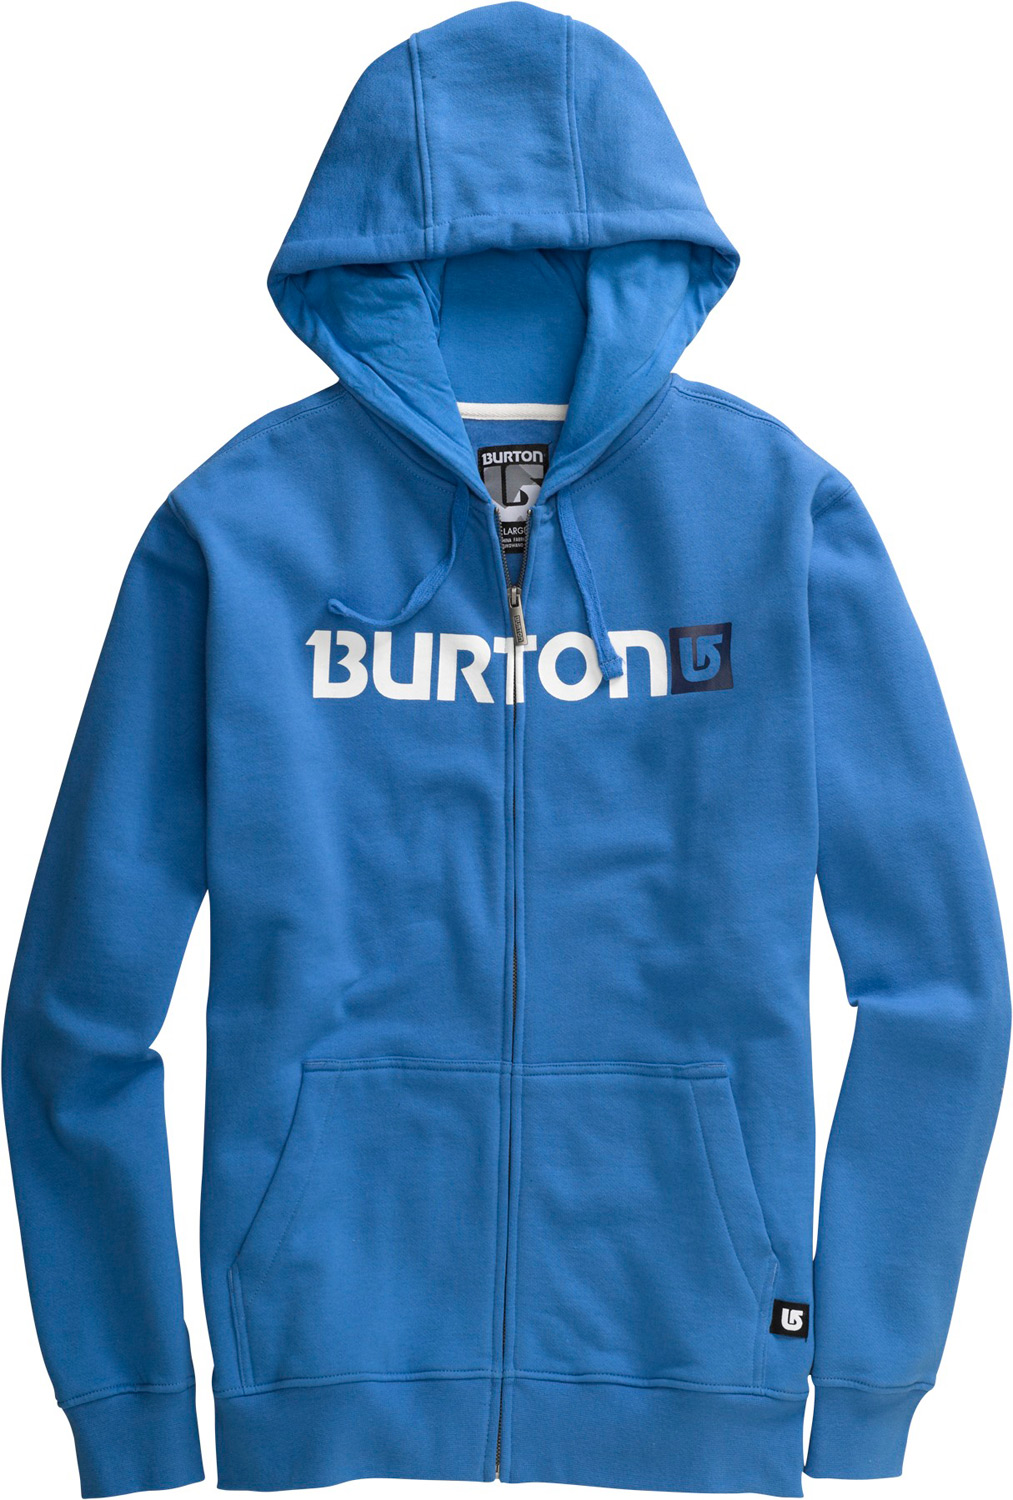 Snowboard Key Features of the Burton Logo Horizontal Hoodie: 80% Cotton/20% Polyester, 300G Fleece Kangaroo Hand Warmer Pocket w/Interior Media Stash Signature Fit Hidden Side Seam Stash Pocket Process Logo on Chest S-XL - $44.95